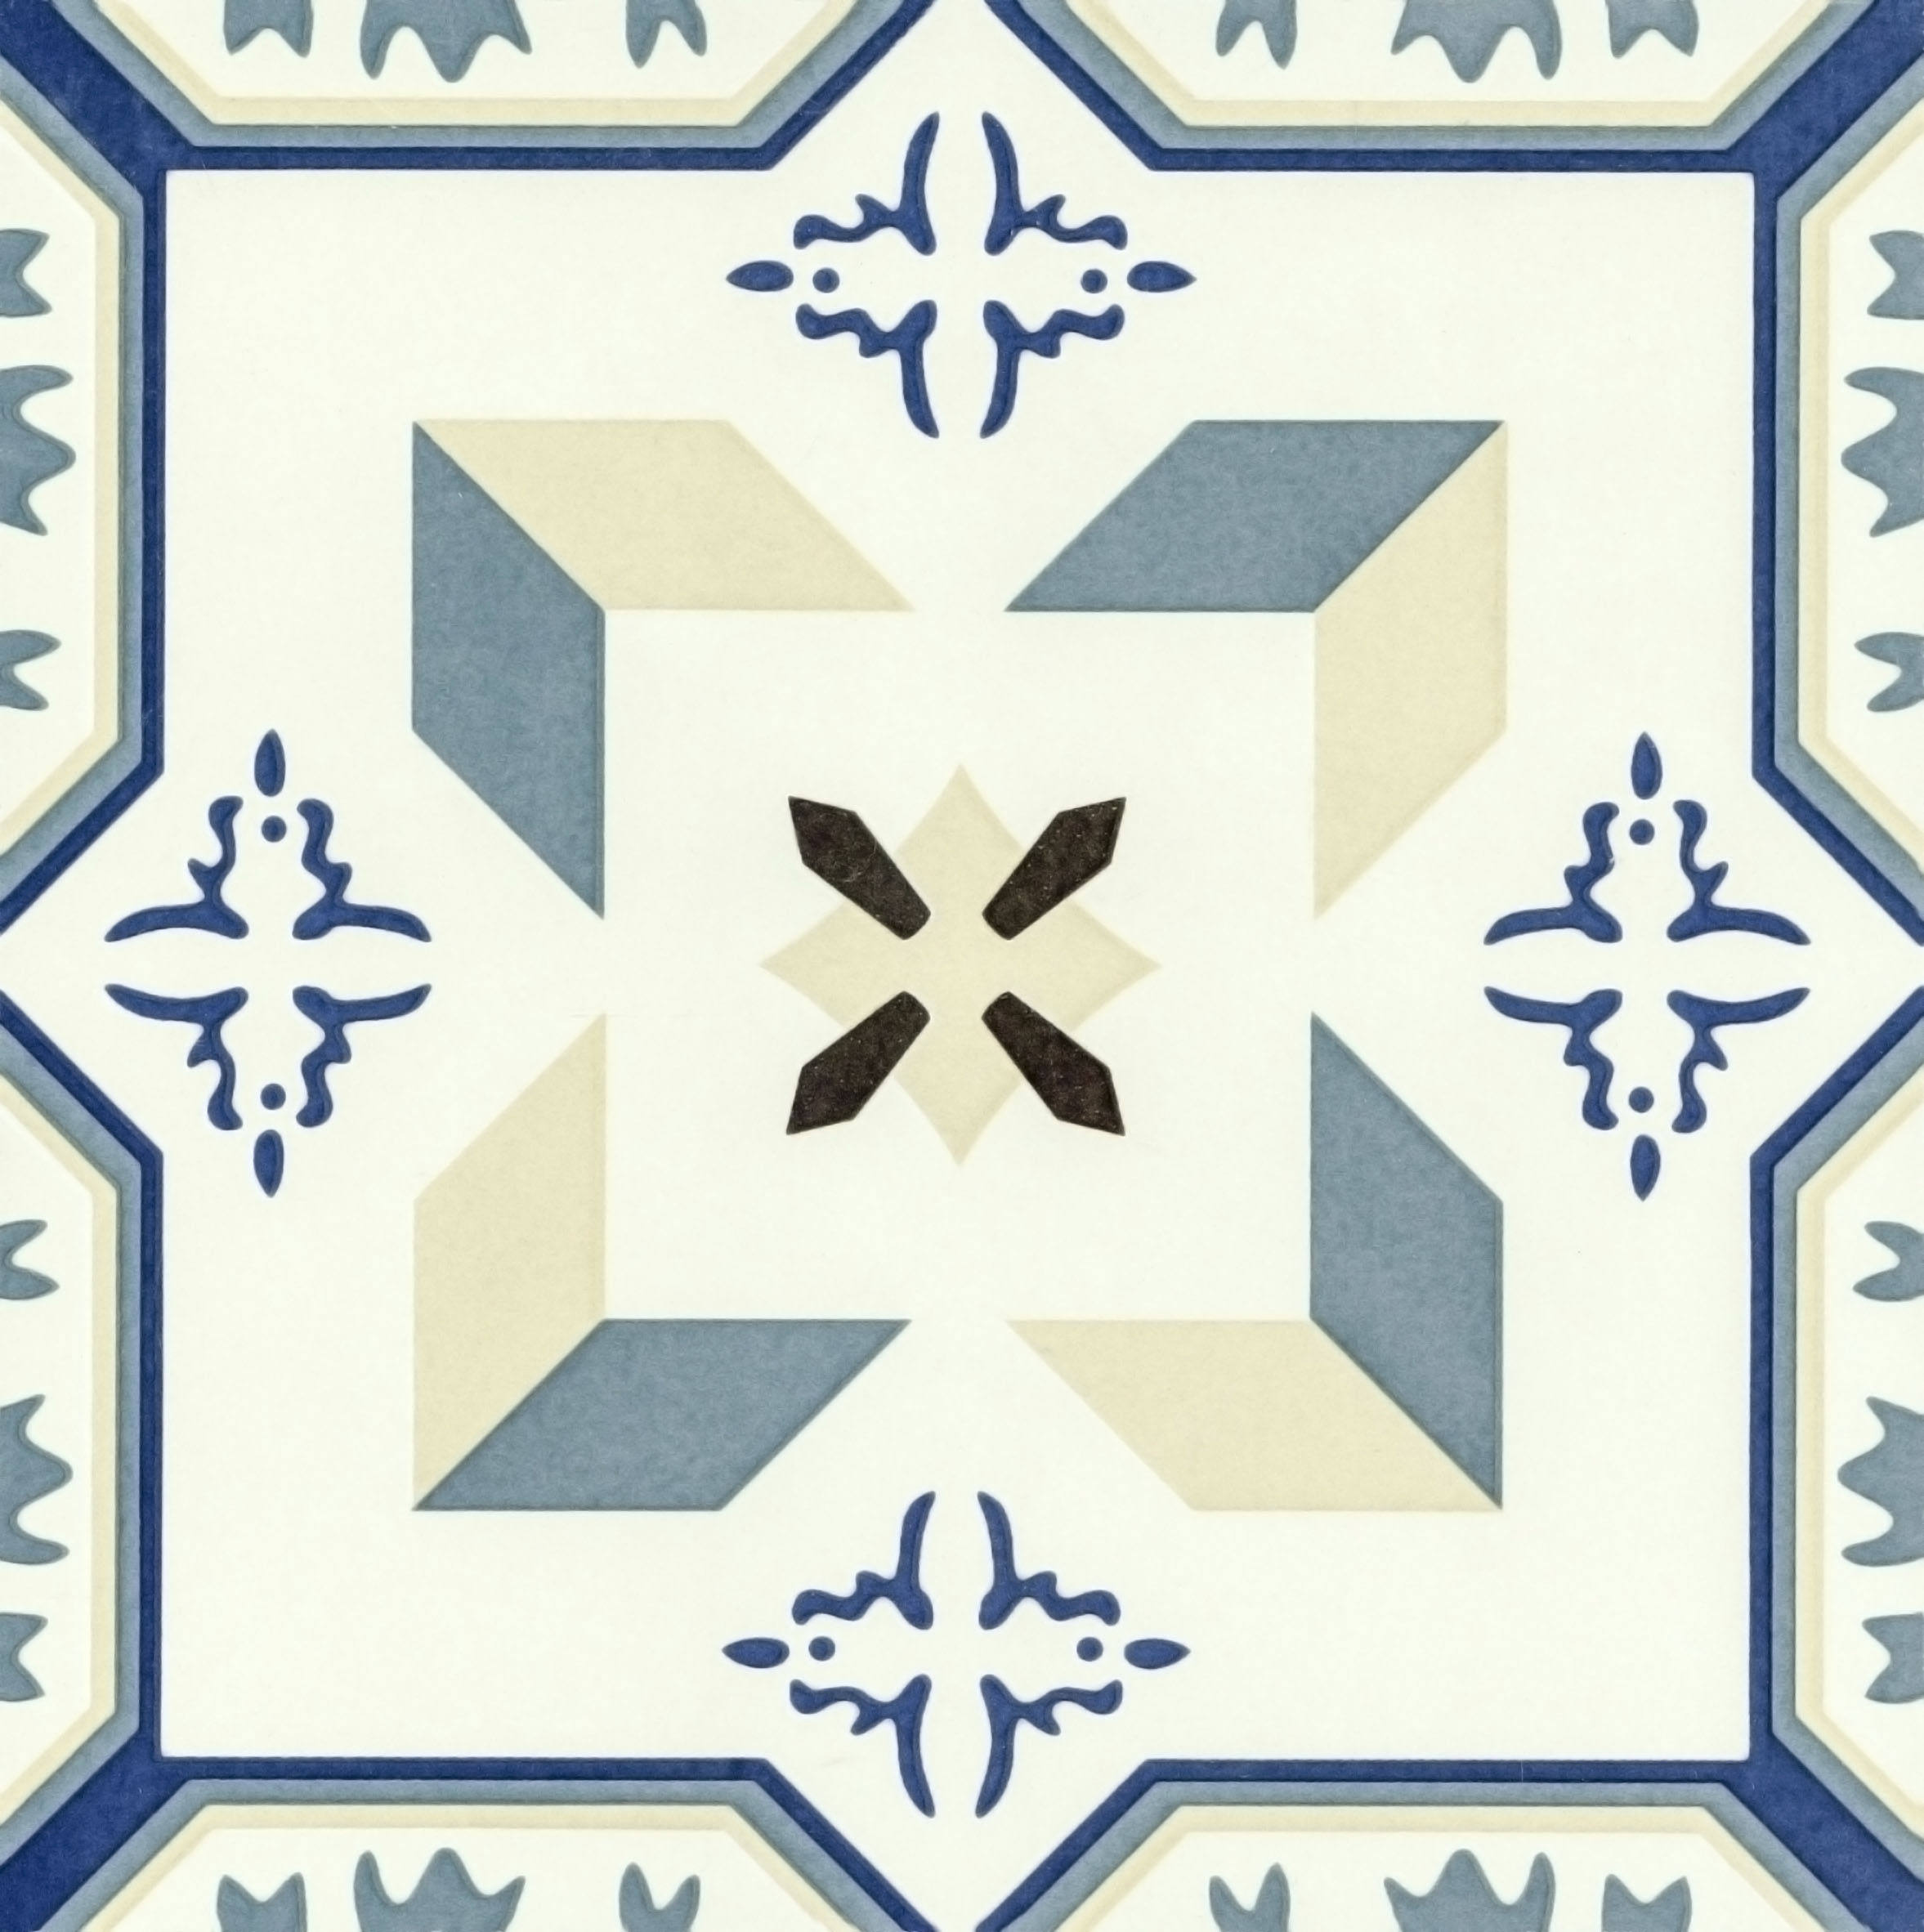 greek elevation patchwork patterned wall decorative bathroom floor tiles